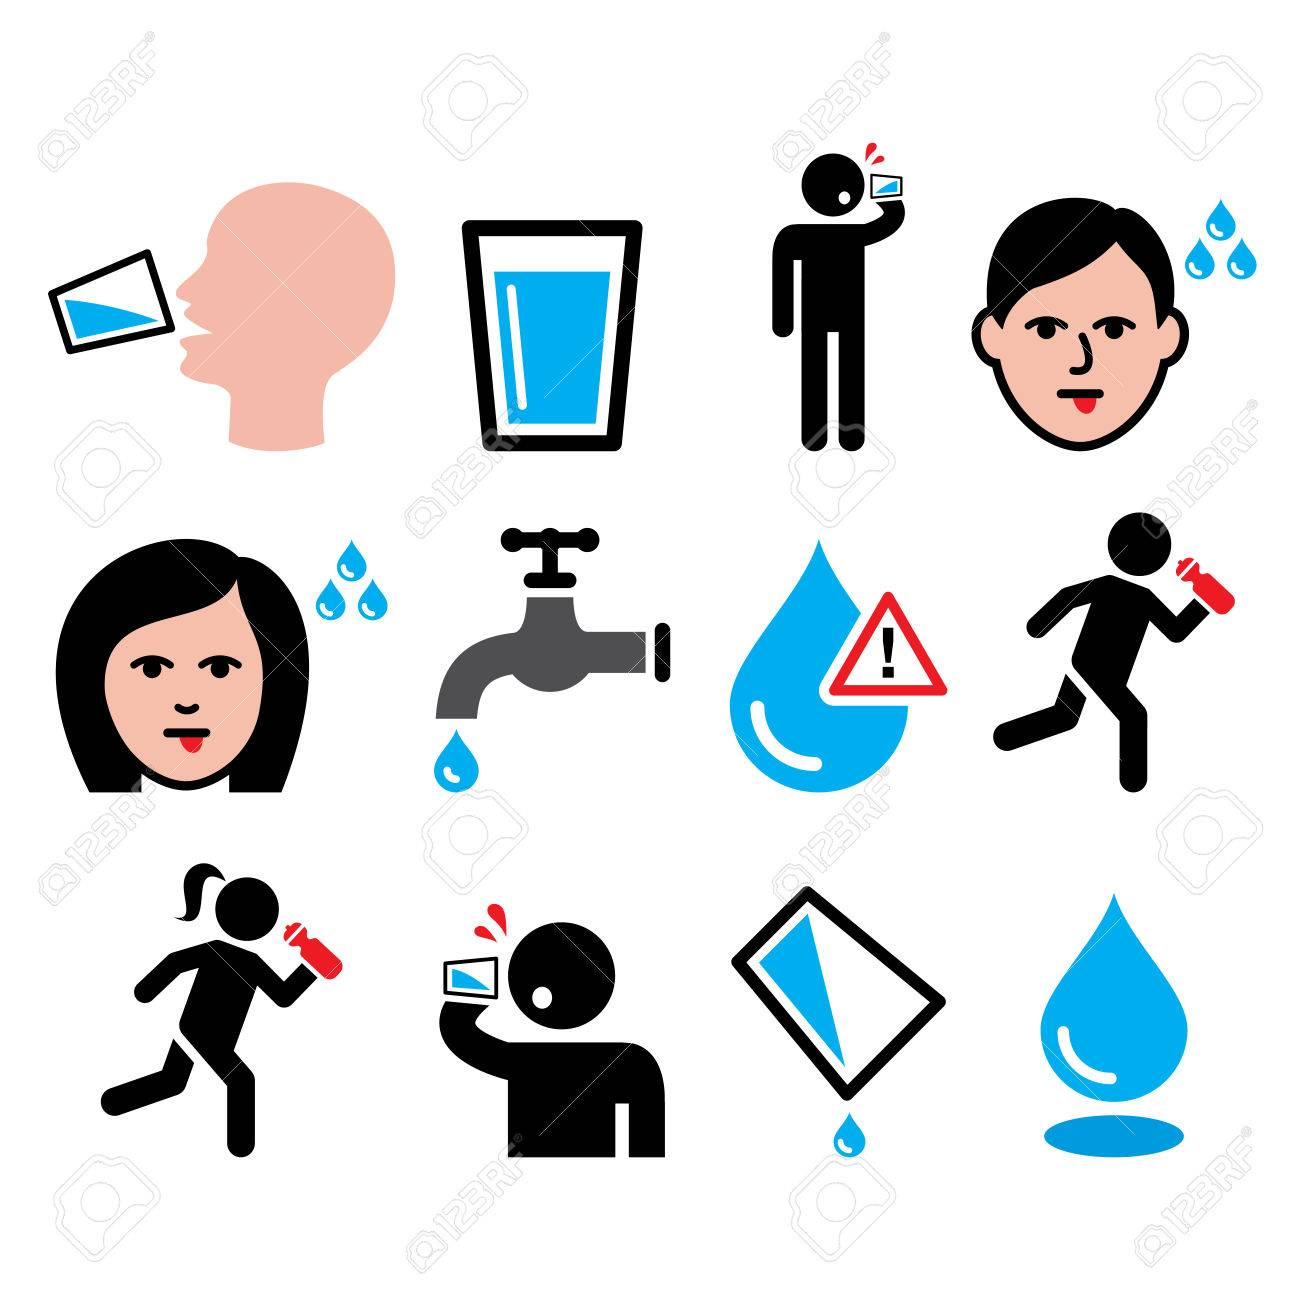 thirsty man dry mouth thirst people drinking water icons set